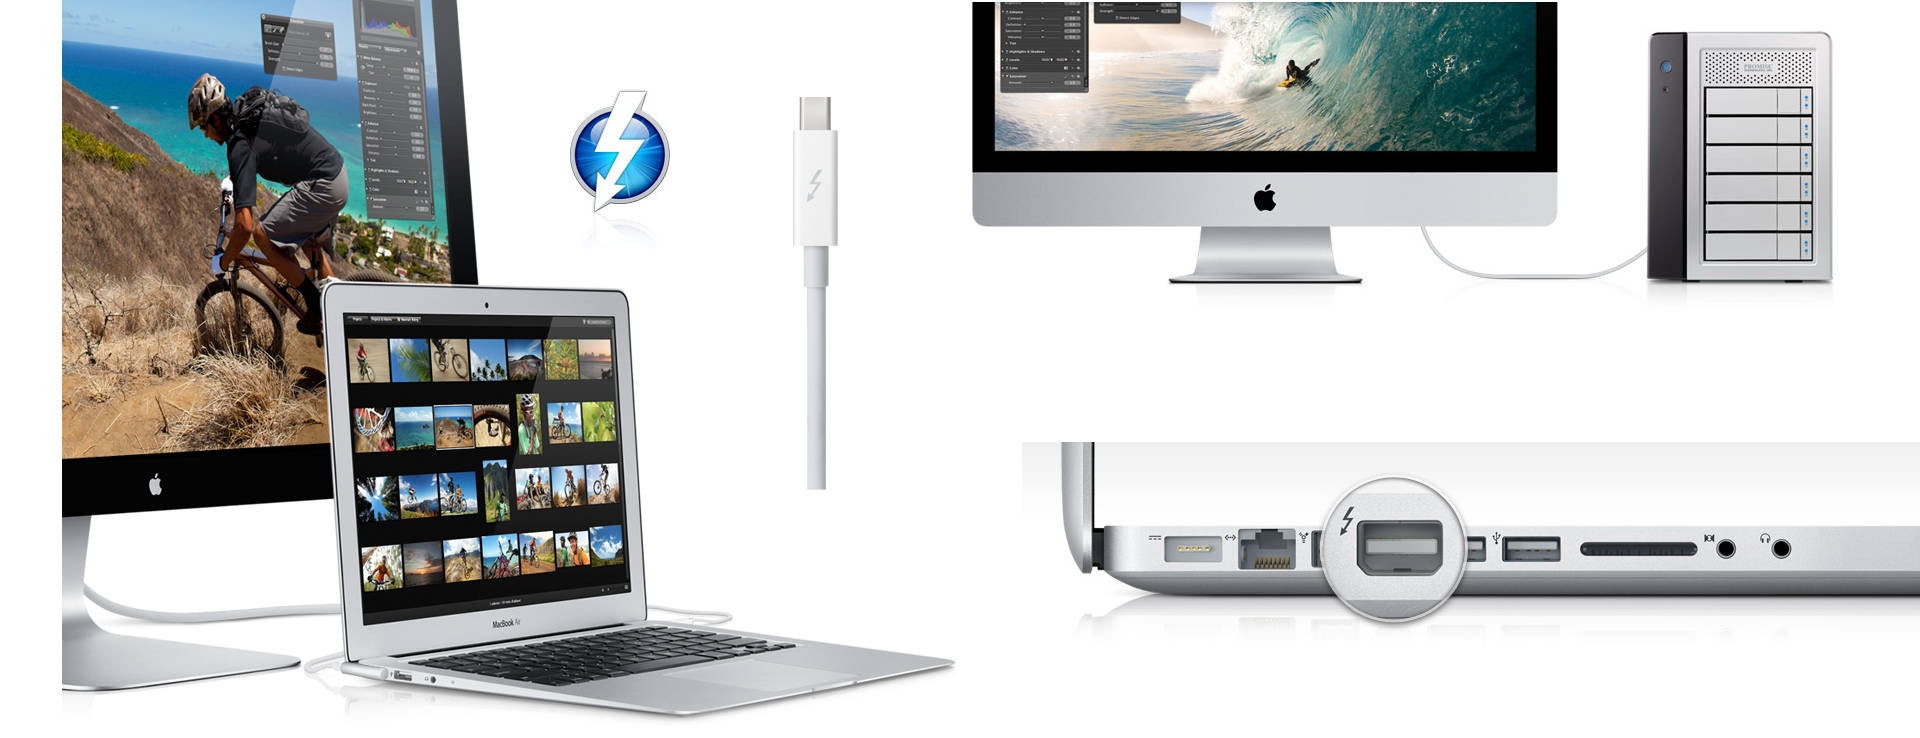 Do You Need a Refurbished Mac with a Thunderbolt Port